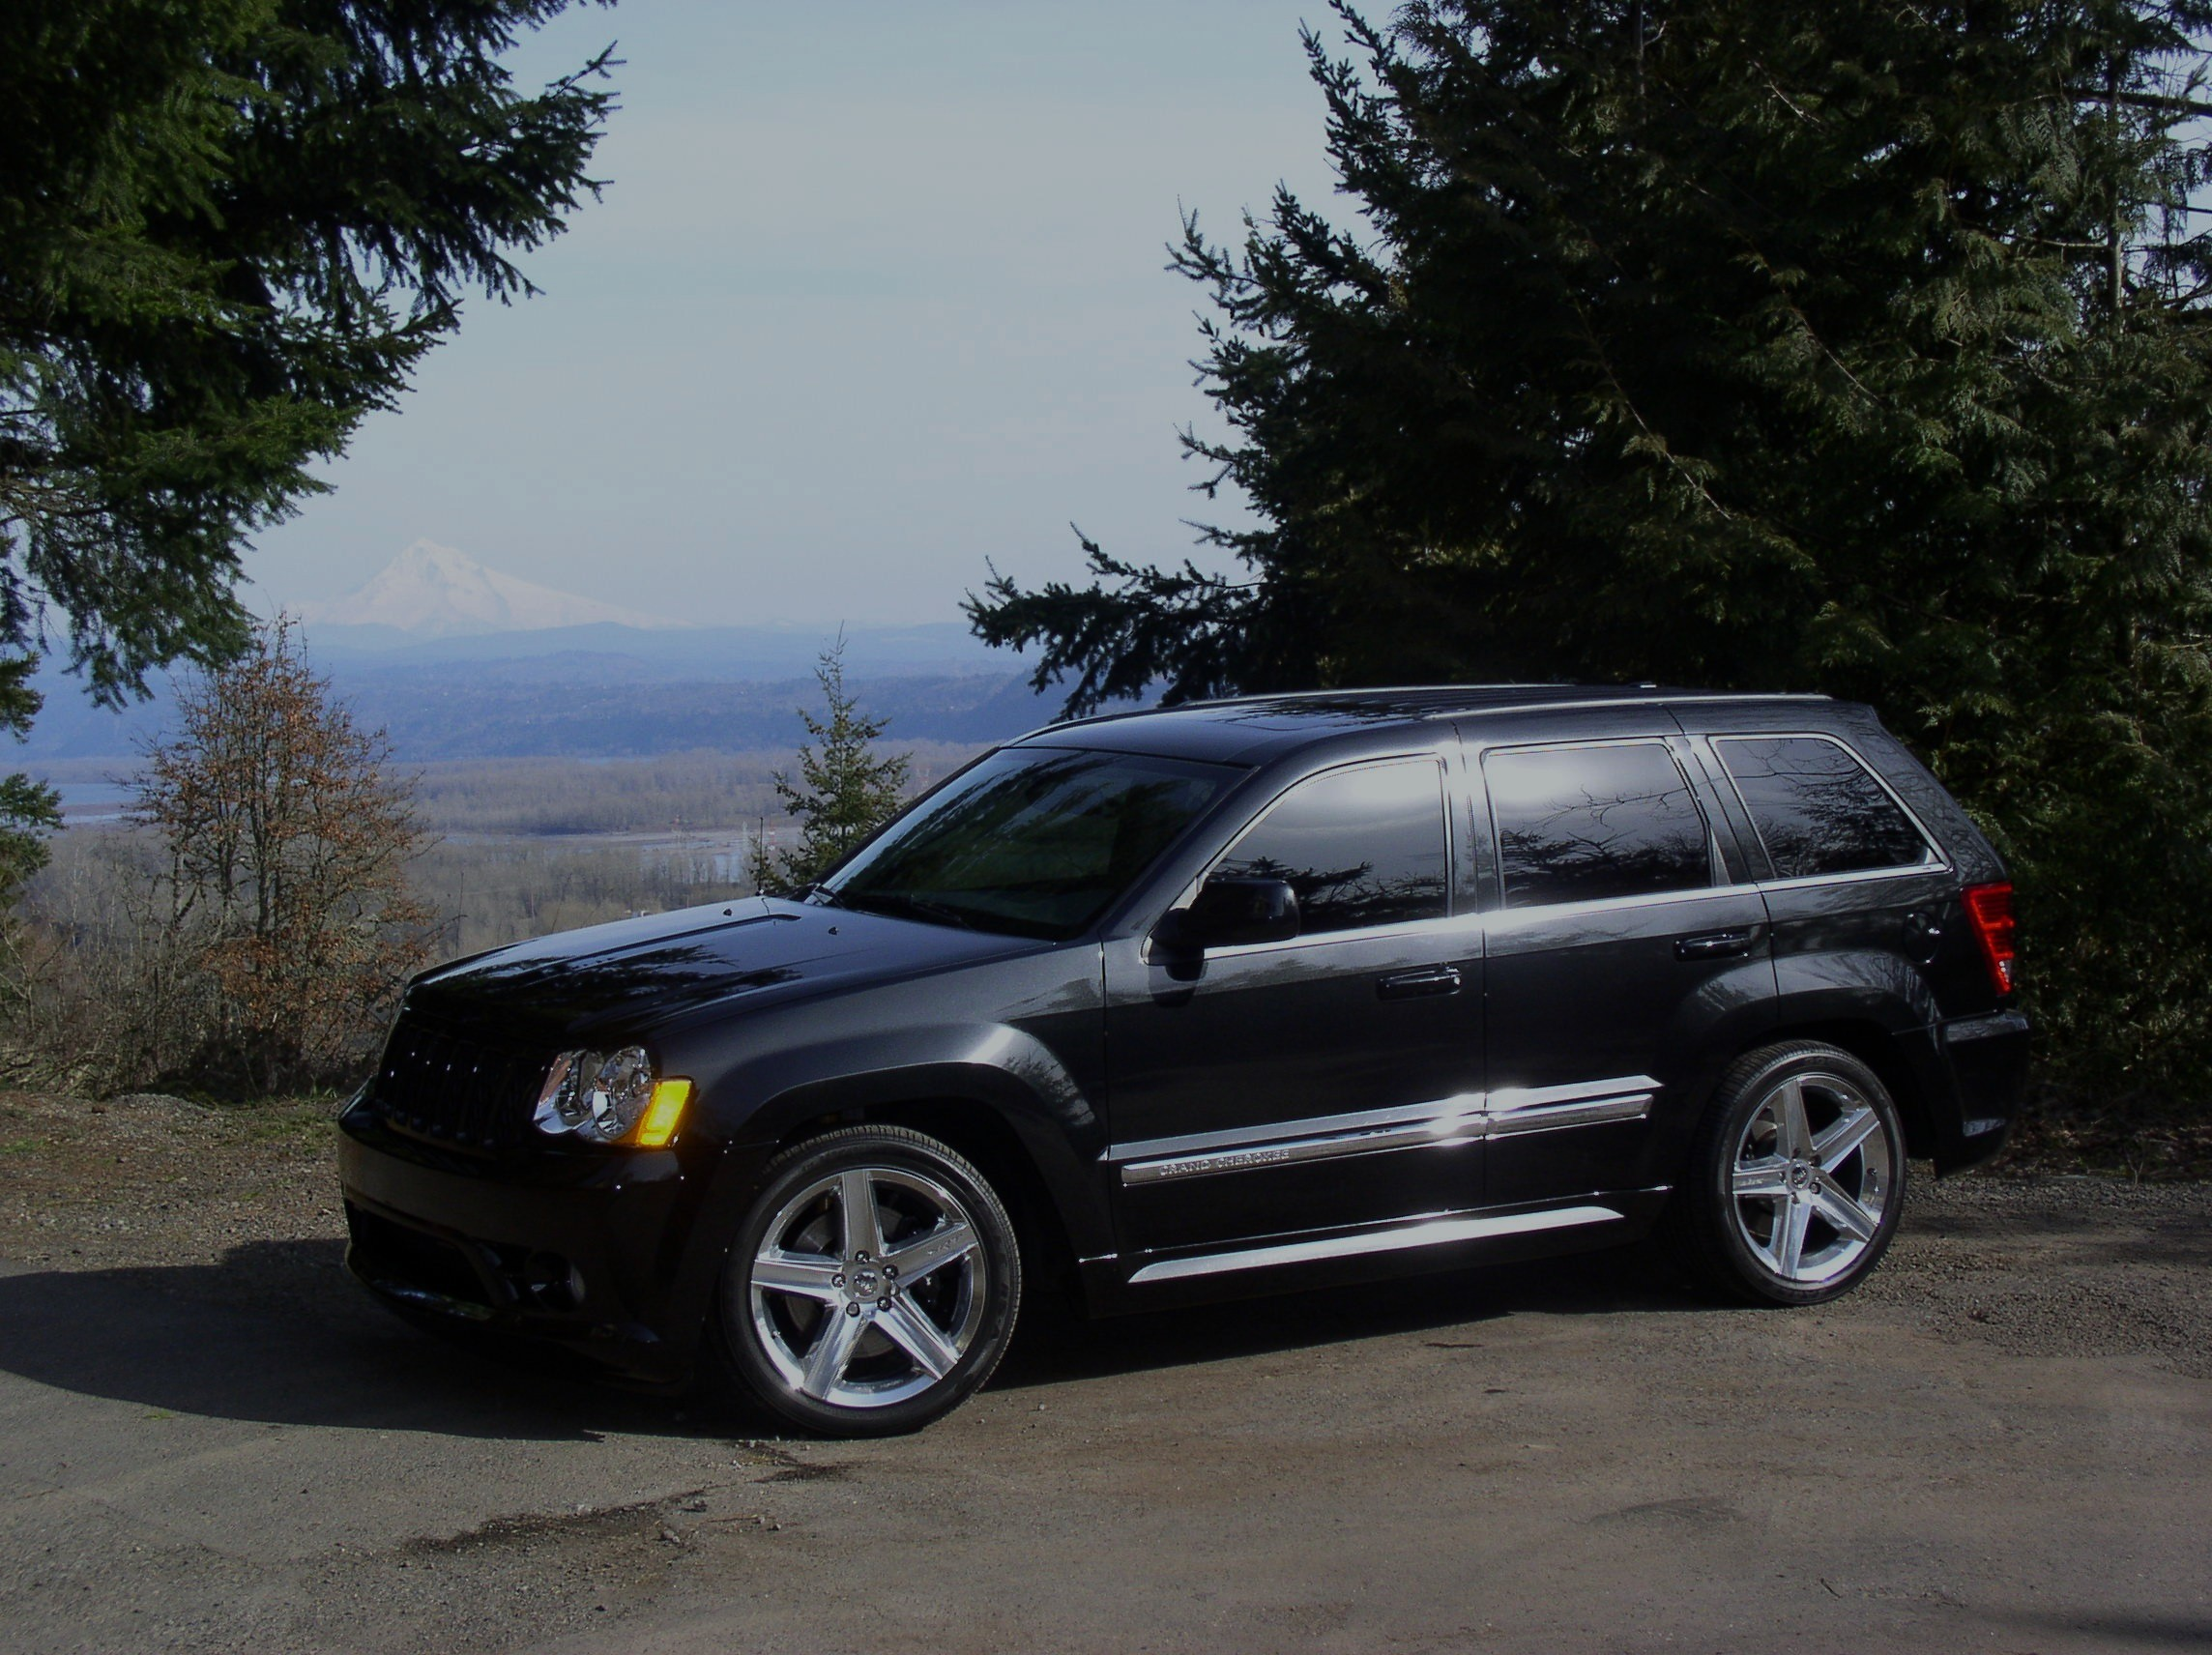 mandan007 2008 jeep grand cherokeesrt8 specs, photos, modification